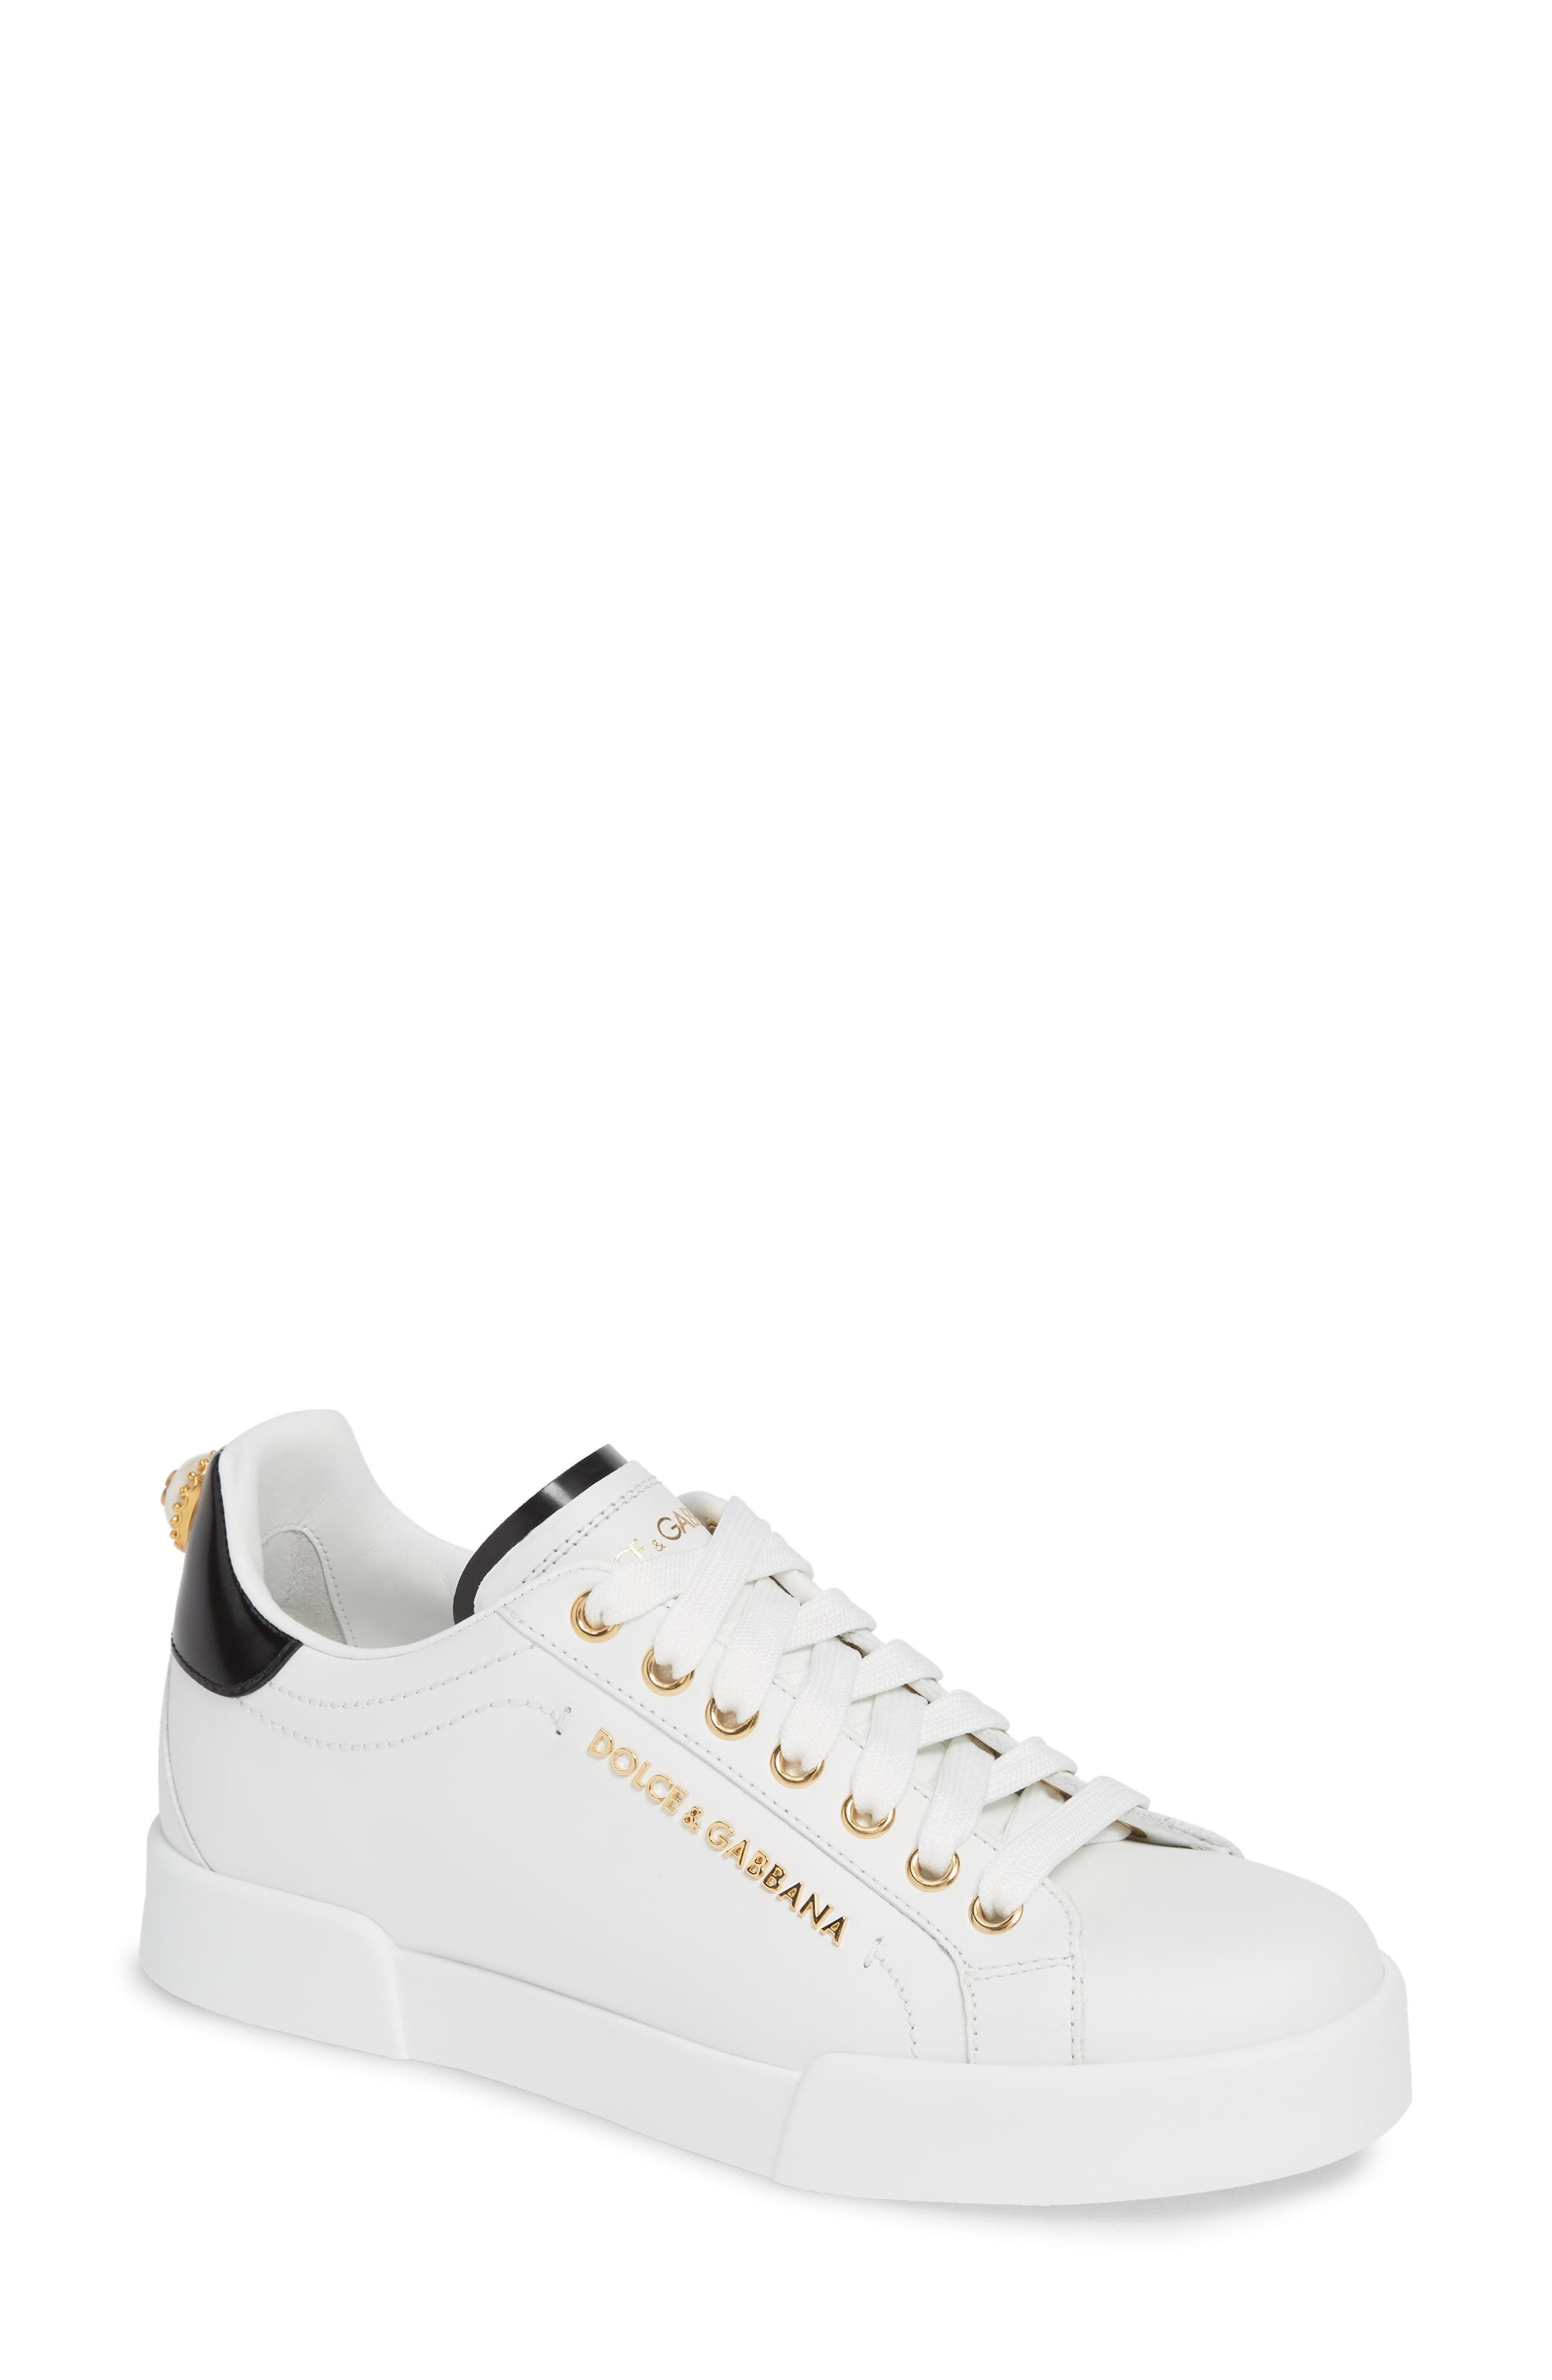 9ca589948f5 Dolce and Gabbana Shoes for Women